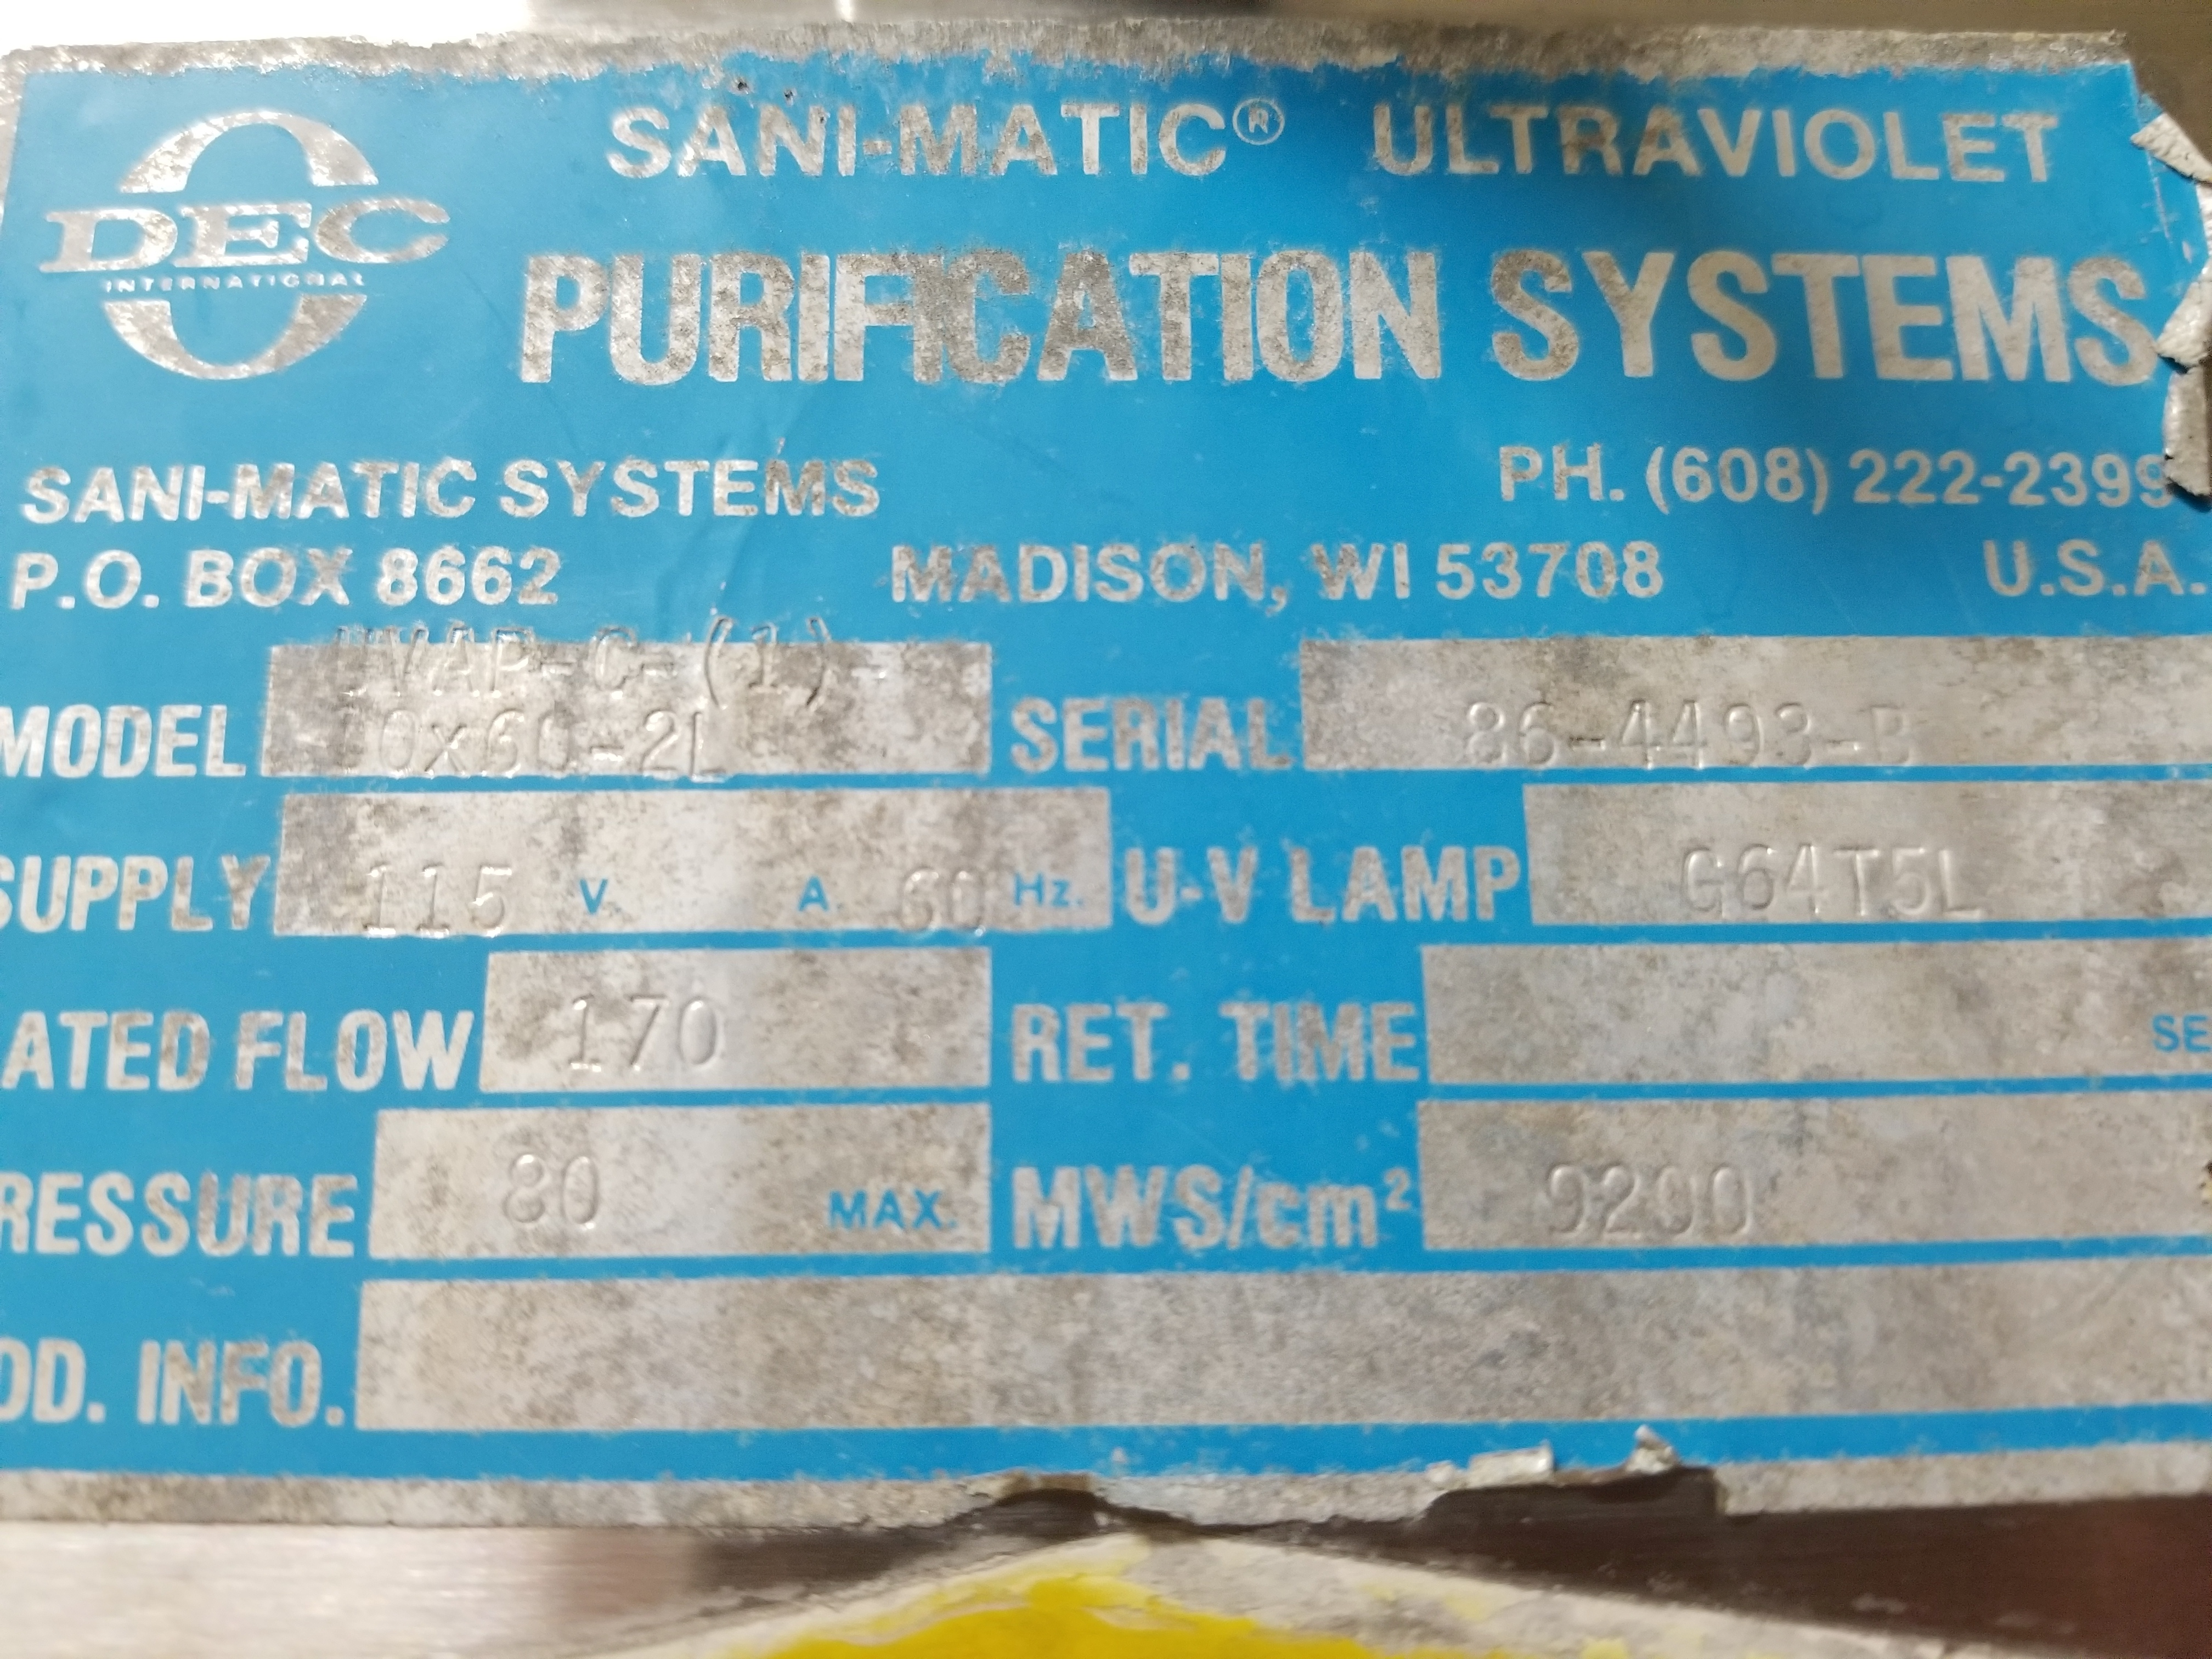 Sani-matic Ultraviolet Purification System - Image 3 of 3